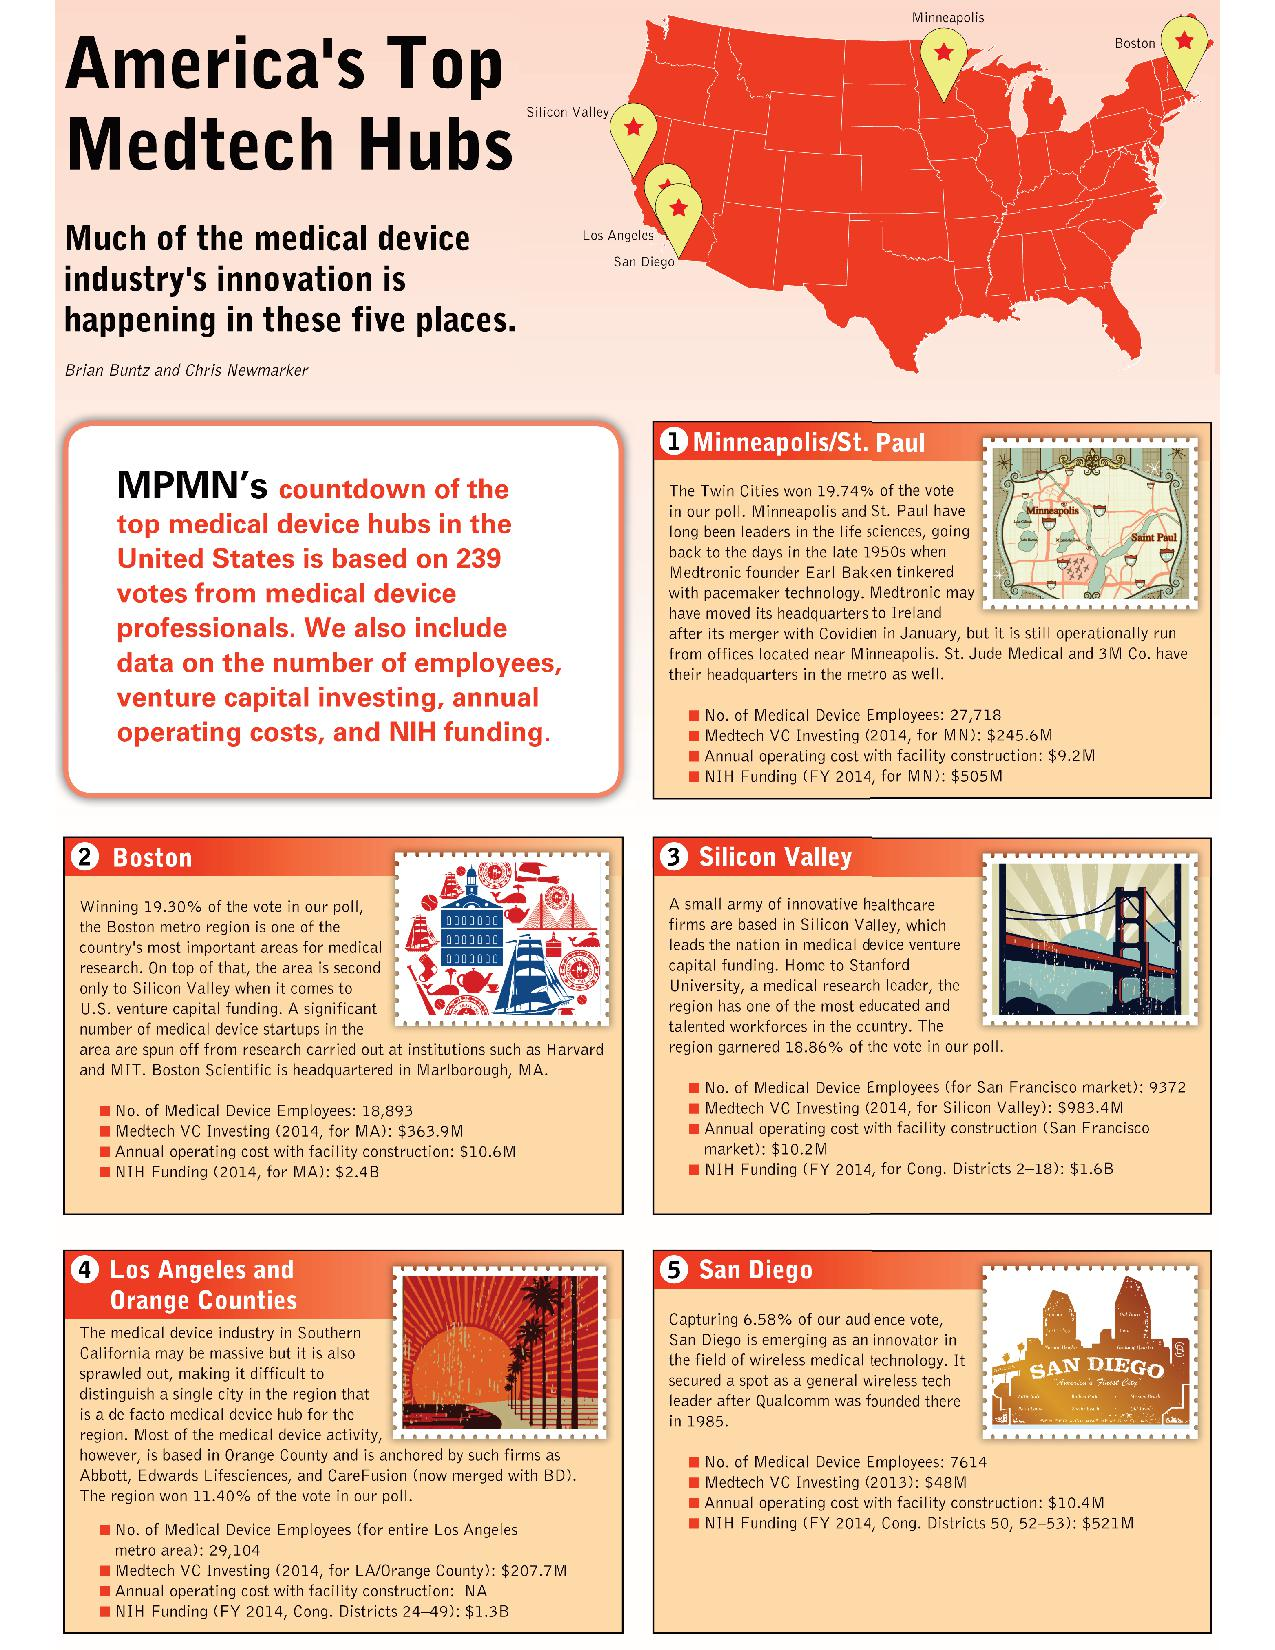 America's Greatest Medtech Hubs: What You Need to Know